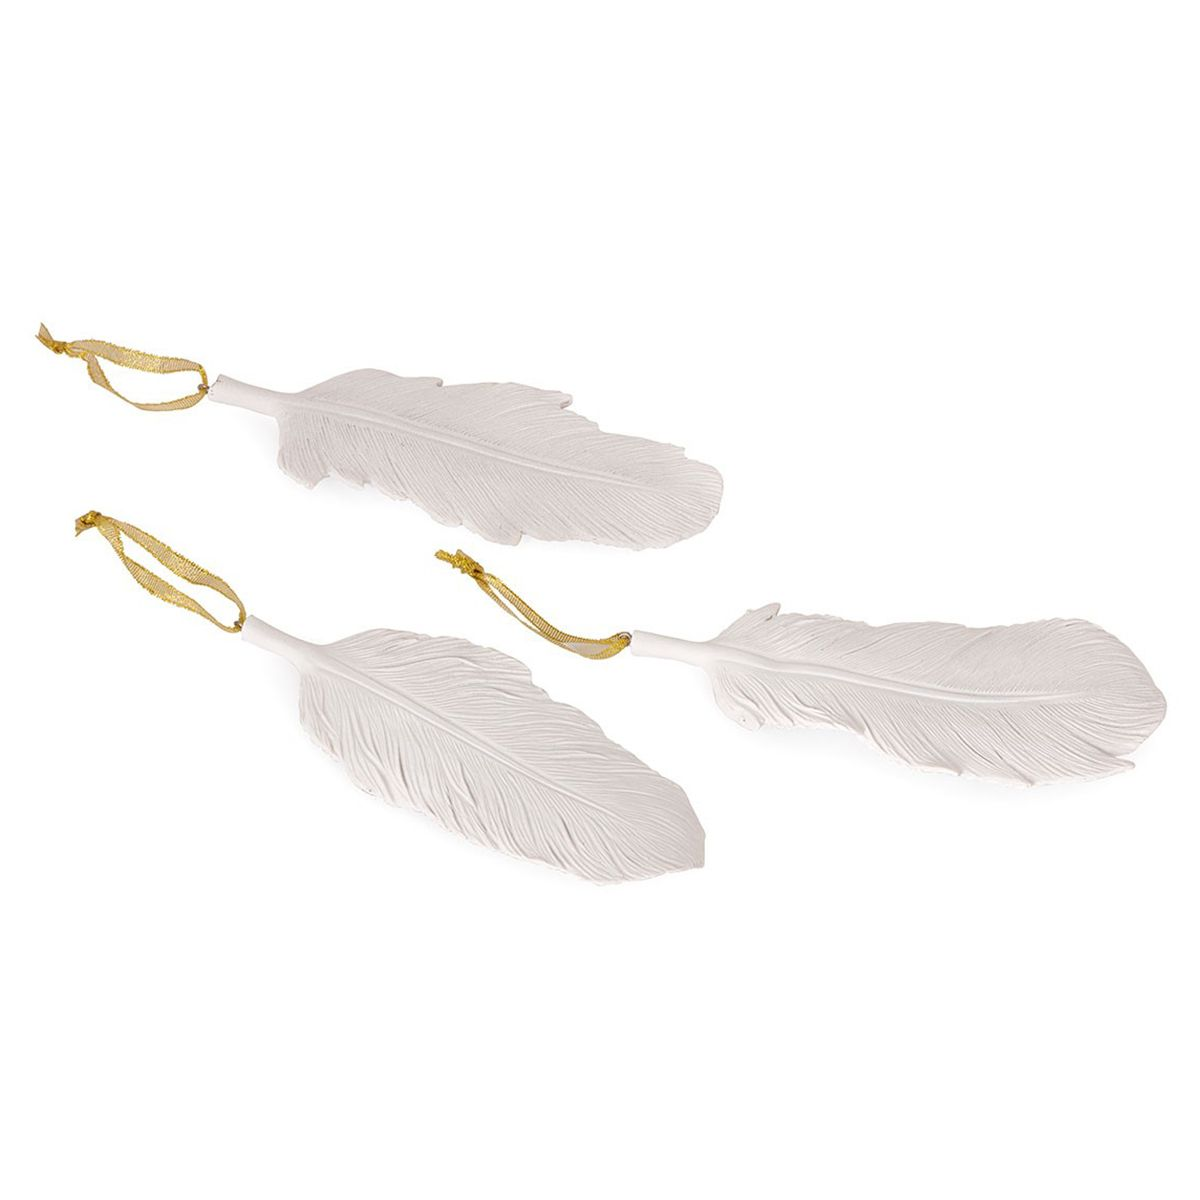 Milky Feather Ornaments - Set of 3